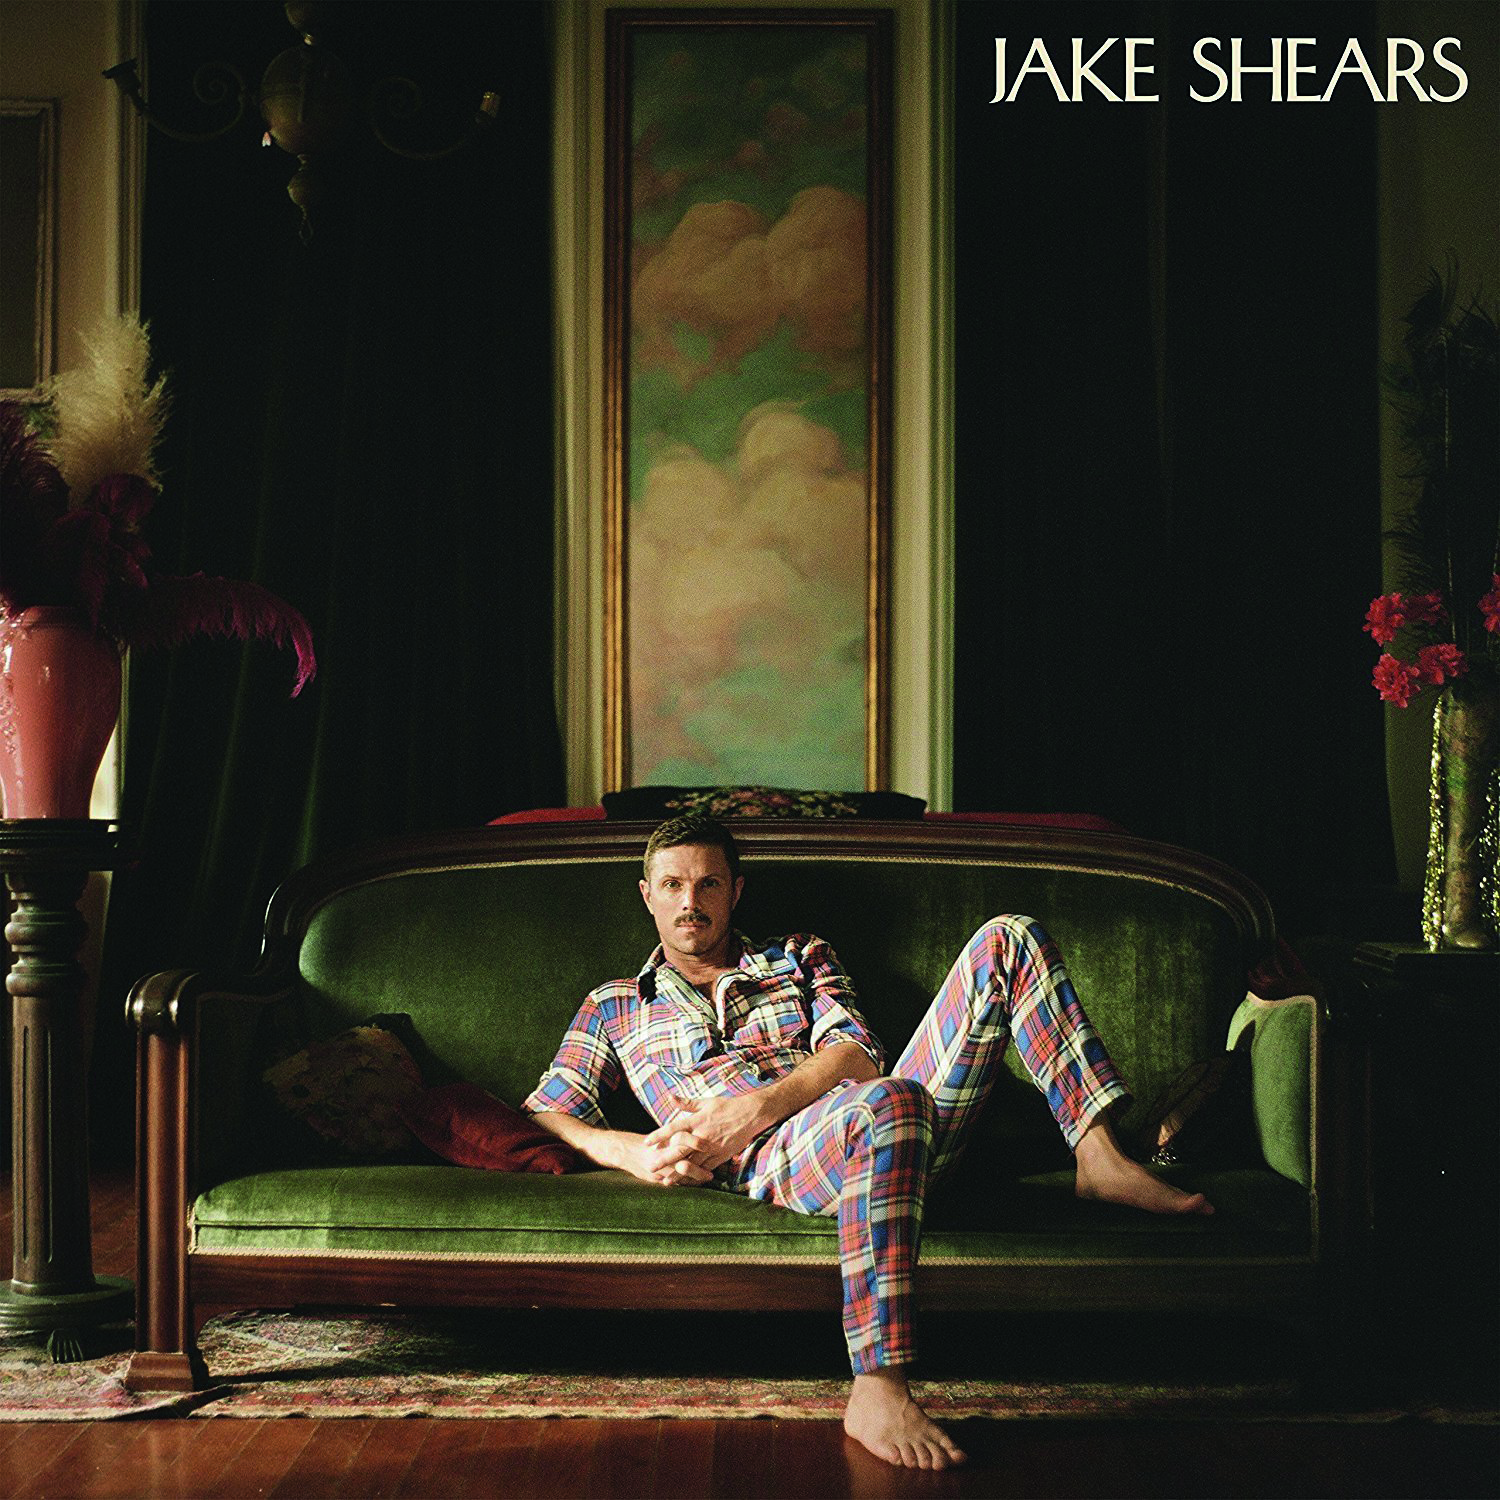 Competition: Win All Saints and Jake Shears albums! - Jake Shears